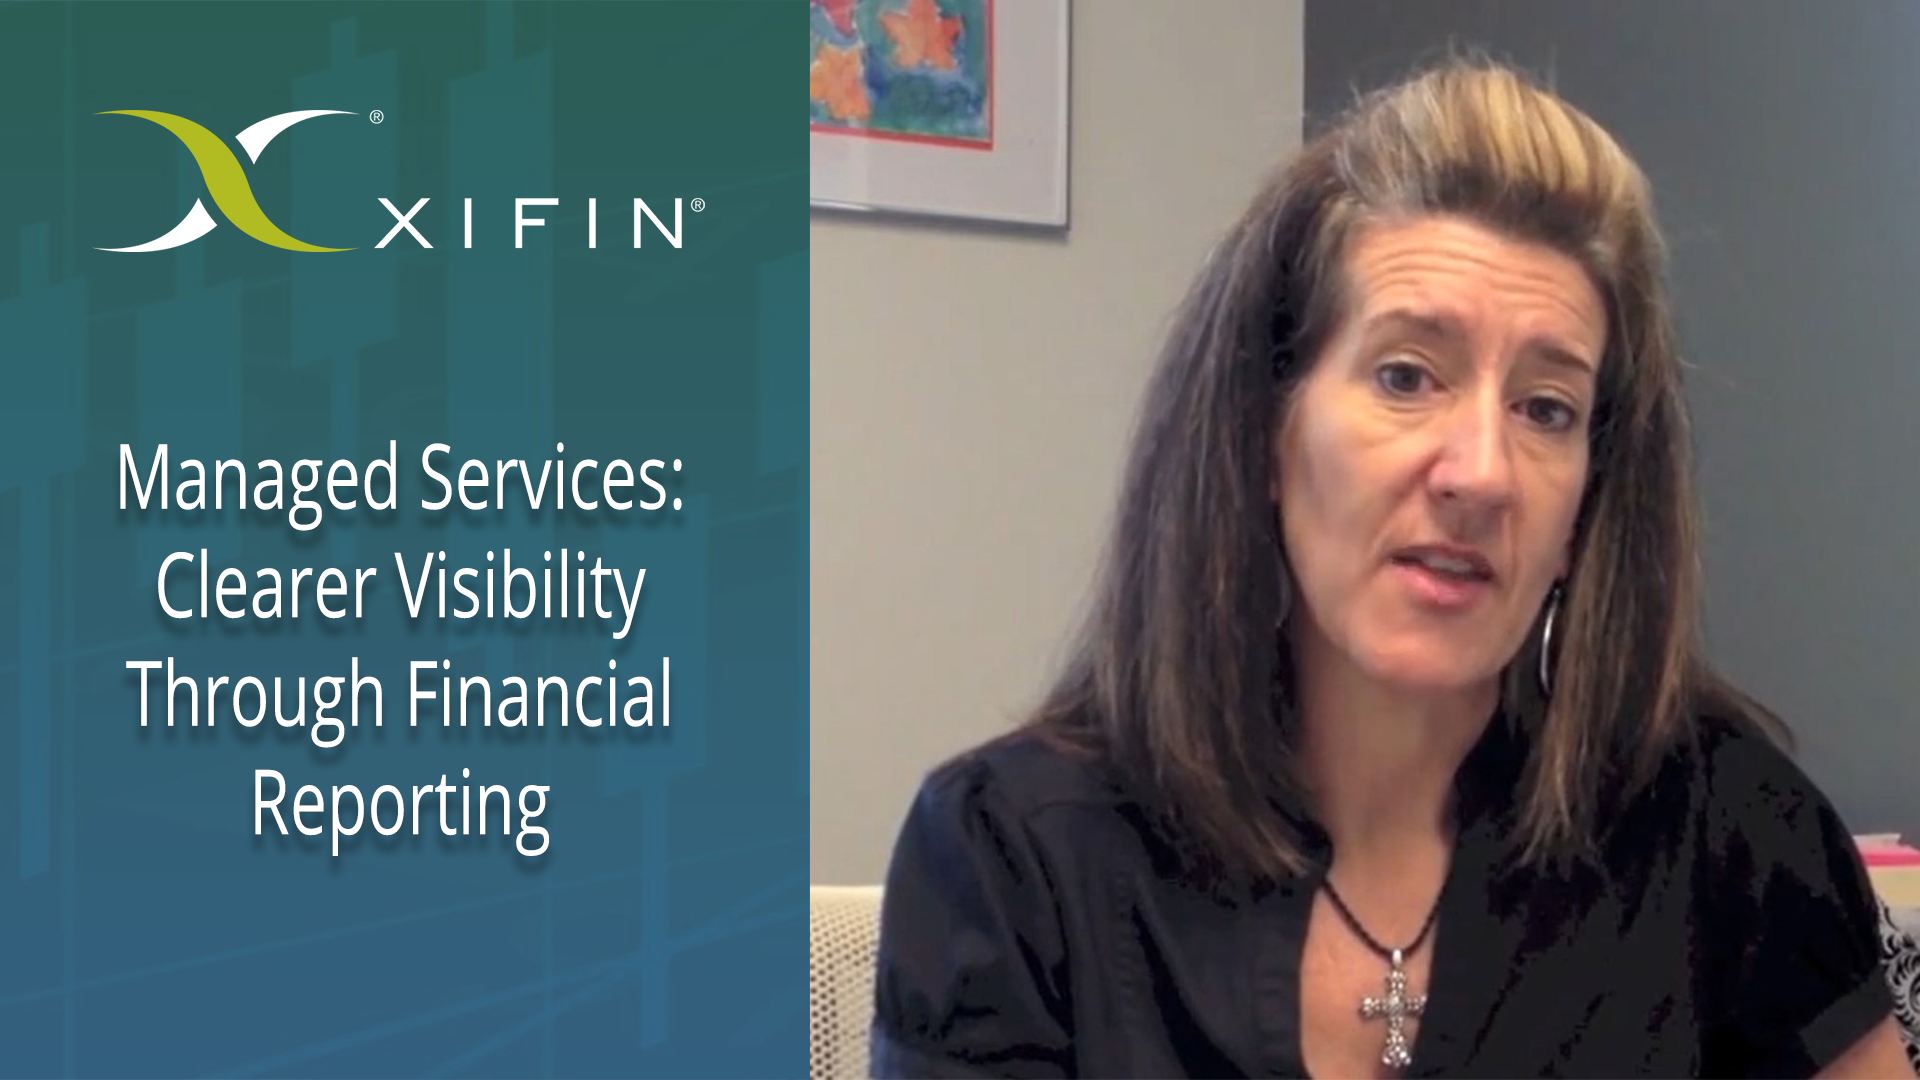 XIFIN Managed Services - Clearer Visibility Through Financial Reporting